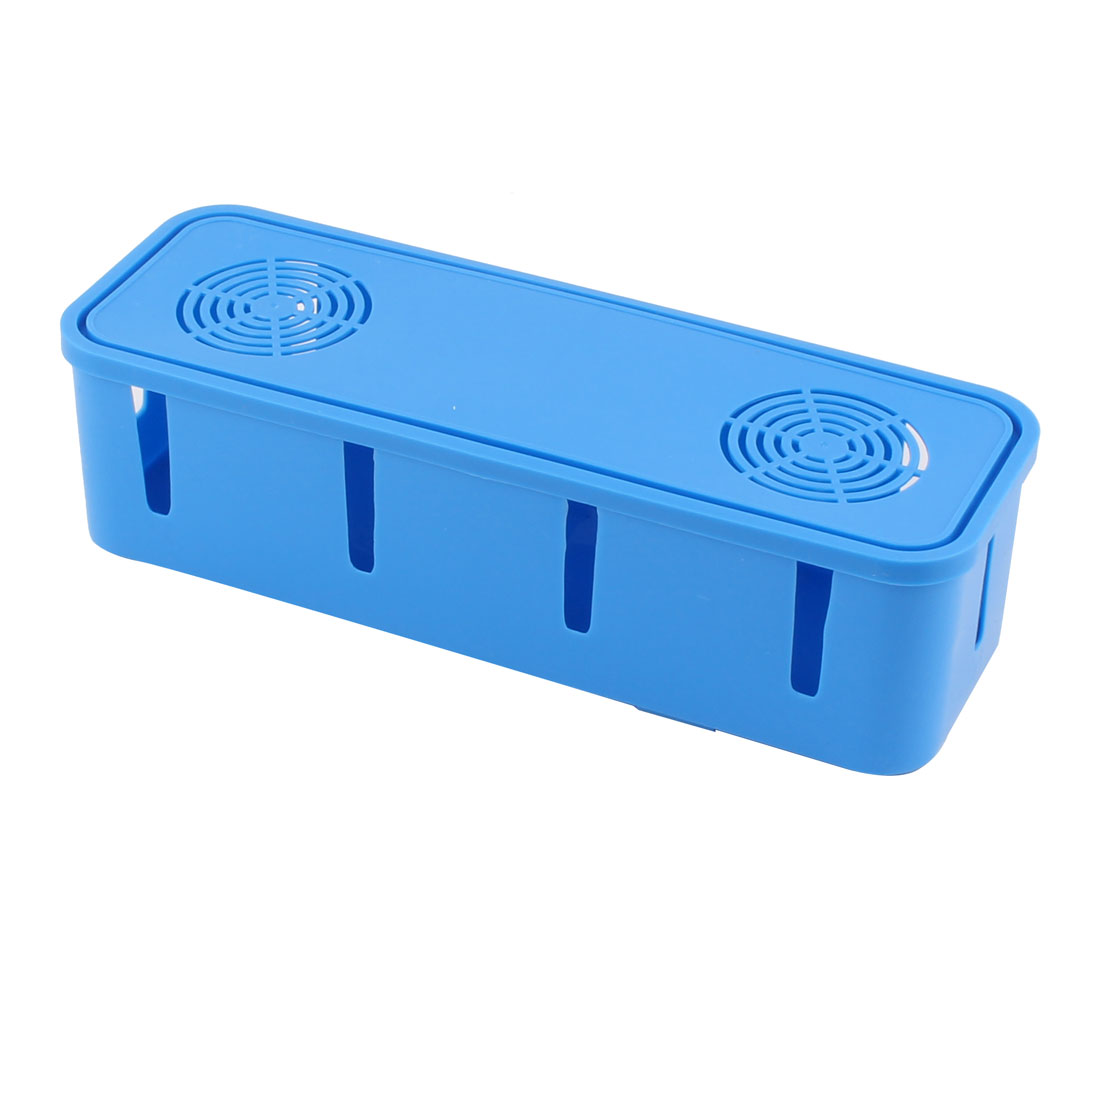 Household Plastic Rectangle Shape Power Cord Socket Storage Case Box Blue